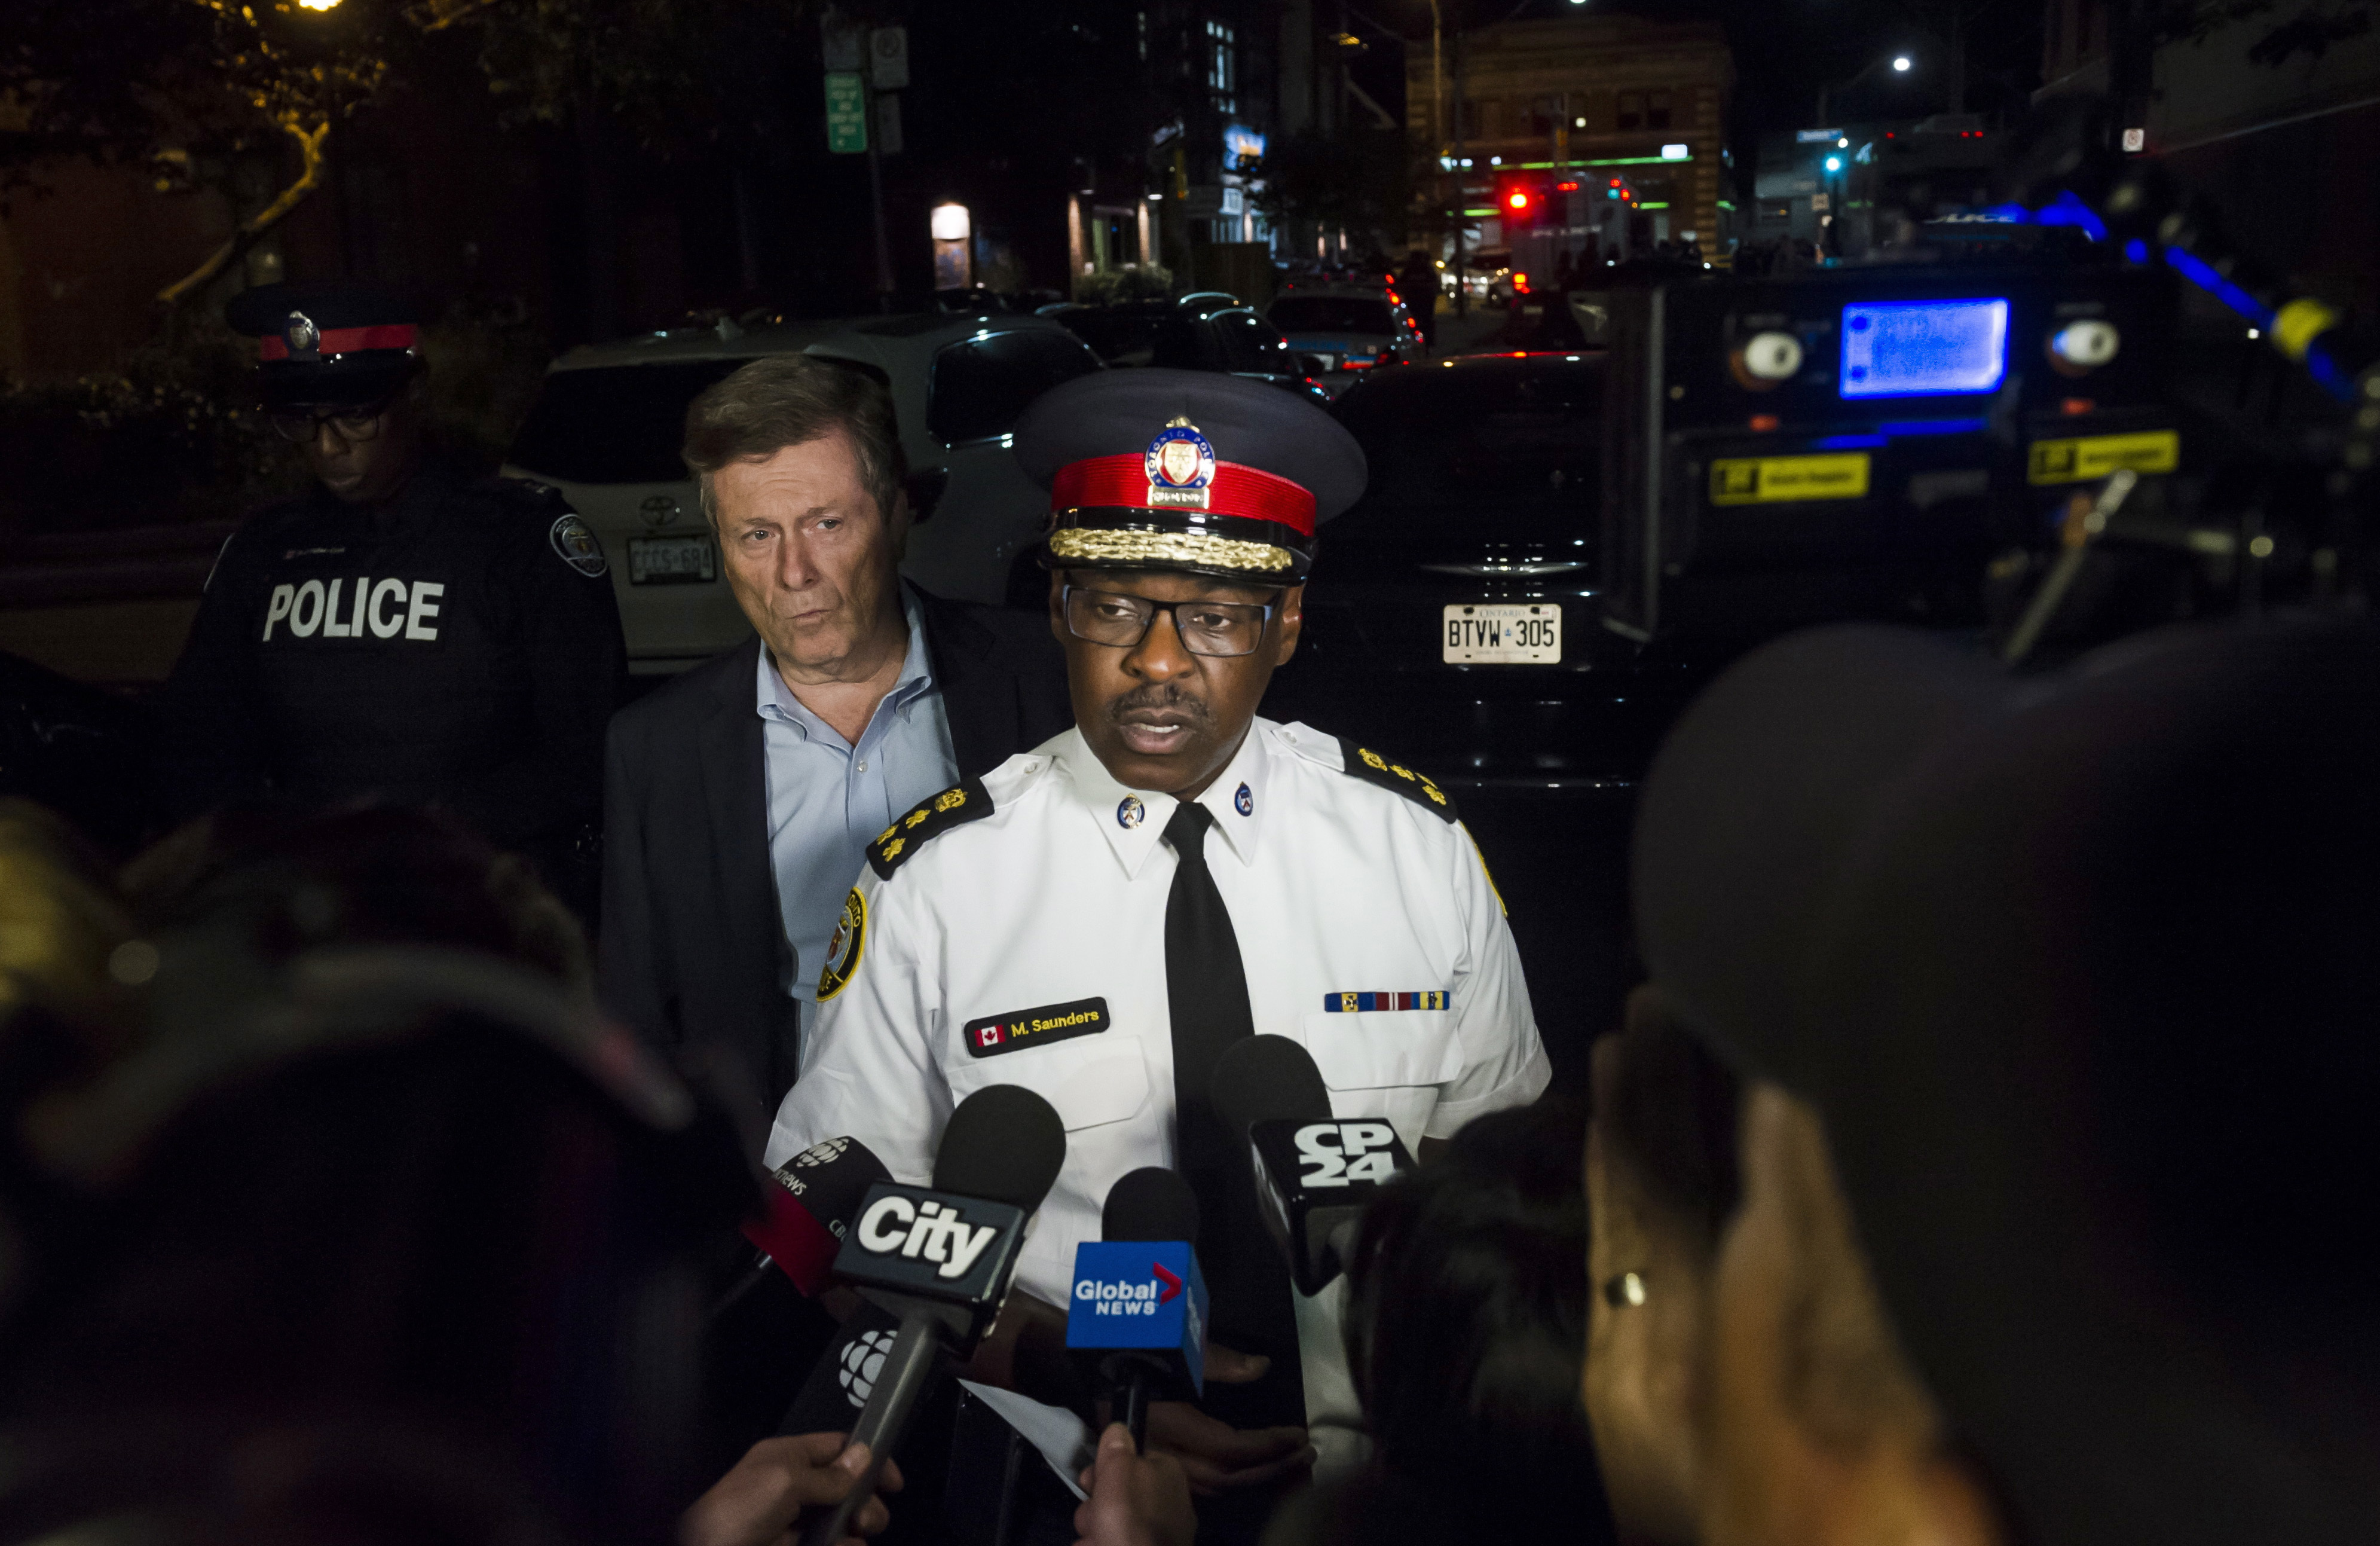 ISIS Claims Deadly Toronto Attack That Killed 2: Propaganda Agency